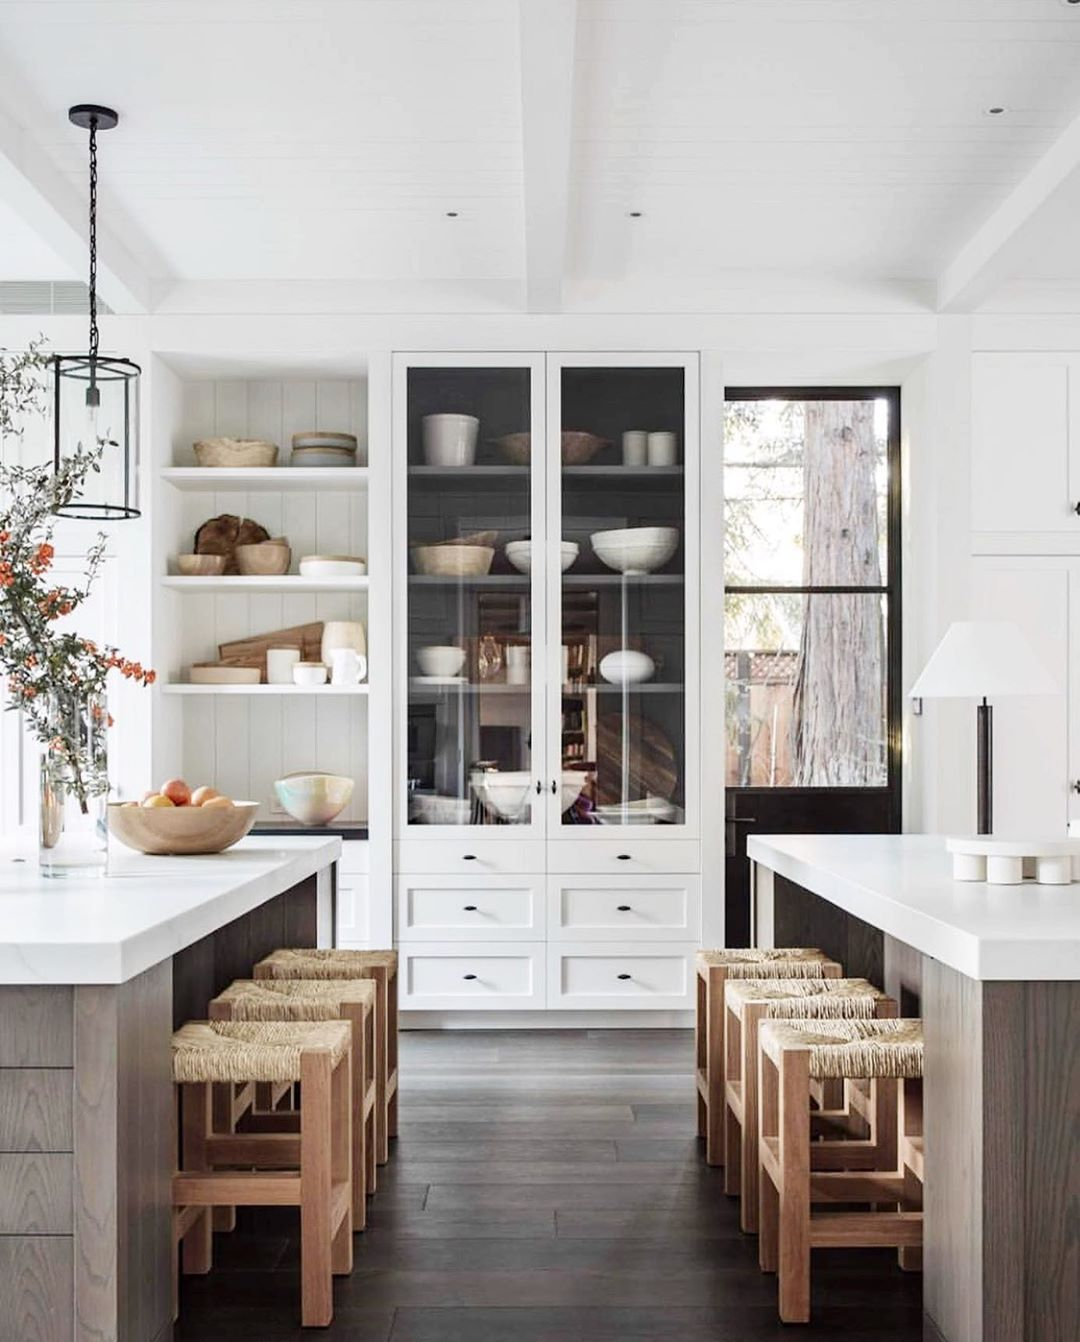 "Leclair Decor on Instagram: ""A little late night inspiration share to cap off this wild day! We're diggin' this incredible kitchen by @m.elle.design and Backen Gillum…"""